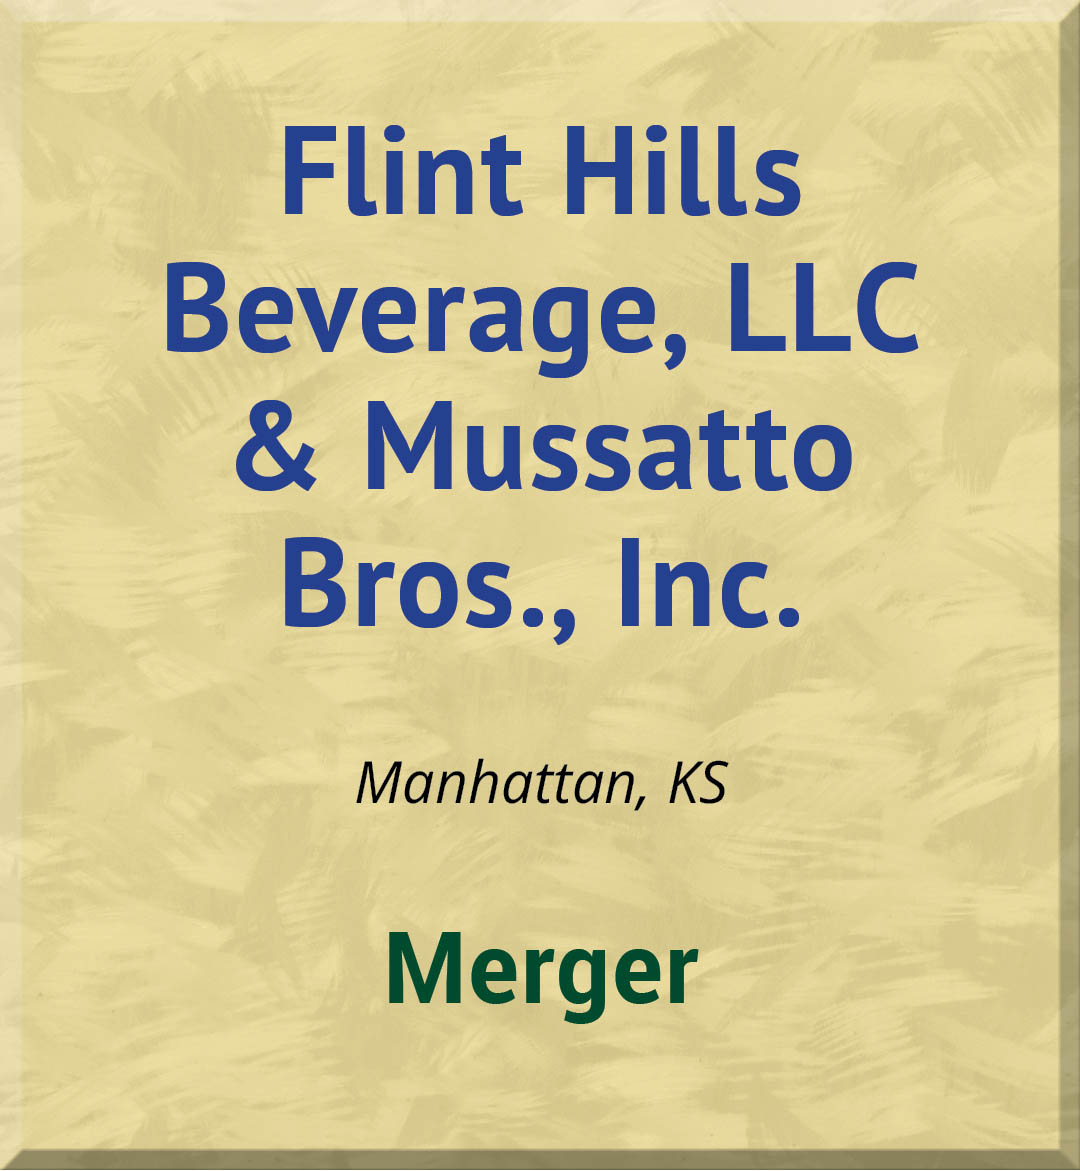 Flint Hills Beverage, LLC & Mussatto Bros., Inc.